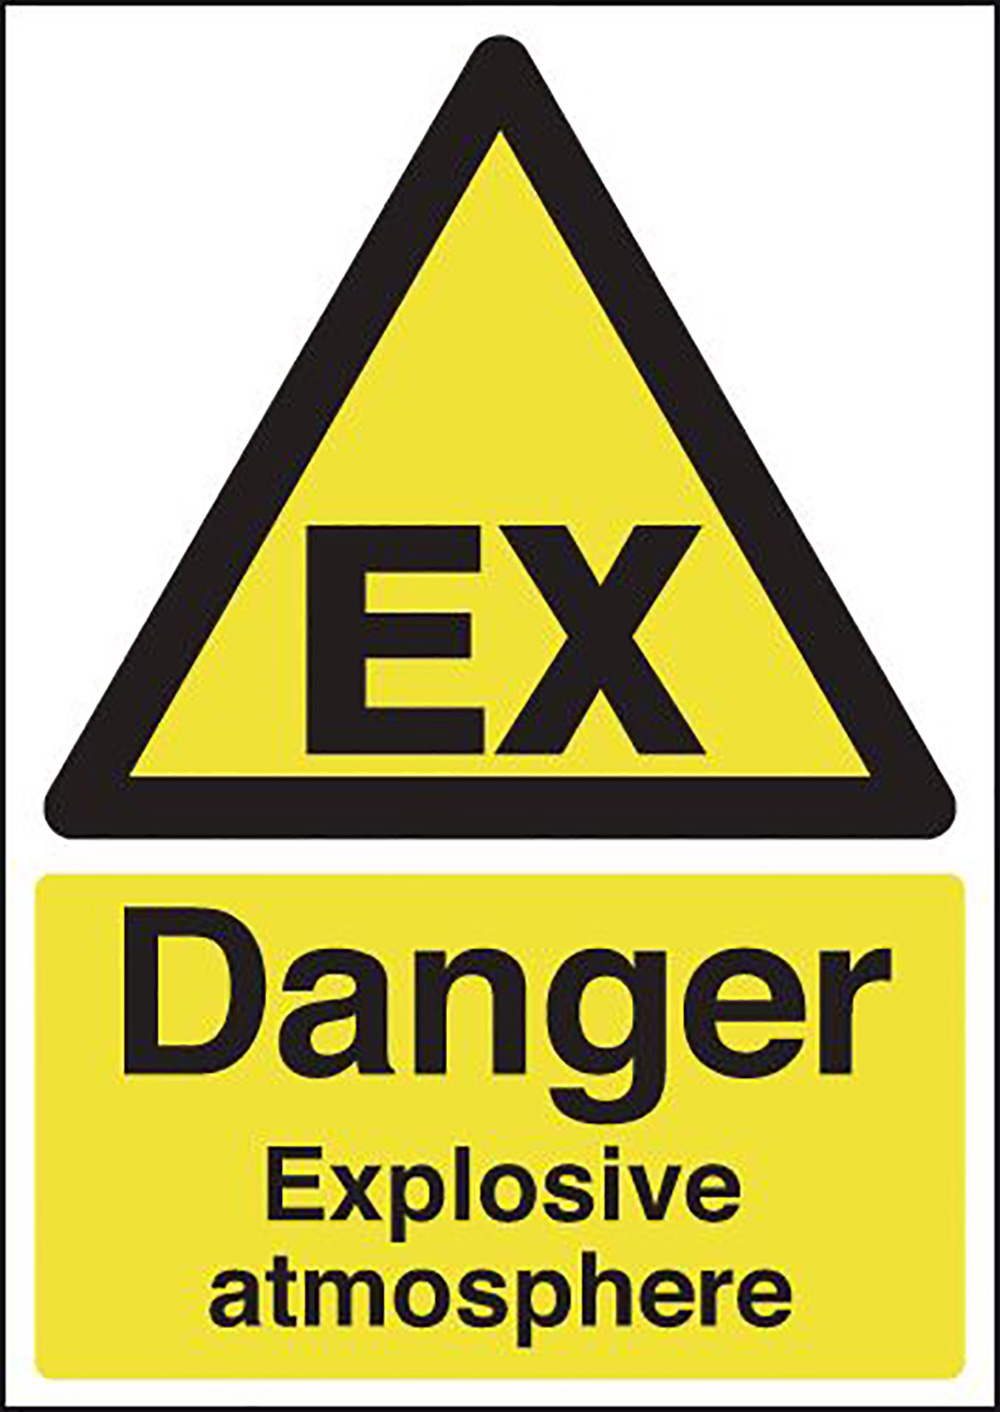 Danger Explosive Atmosphere 420x297mm 1.2mm Rigid Plastic Safety Sign